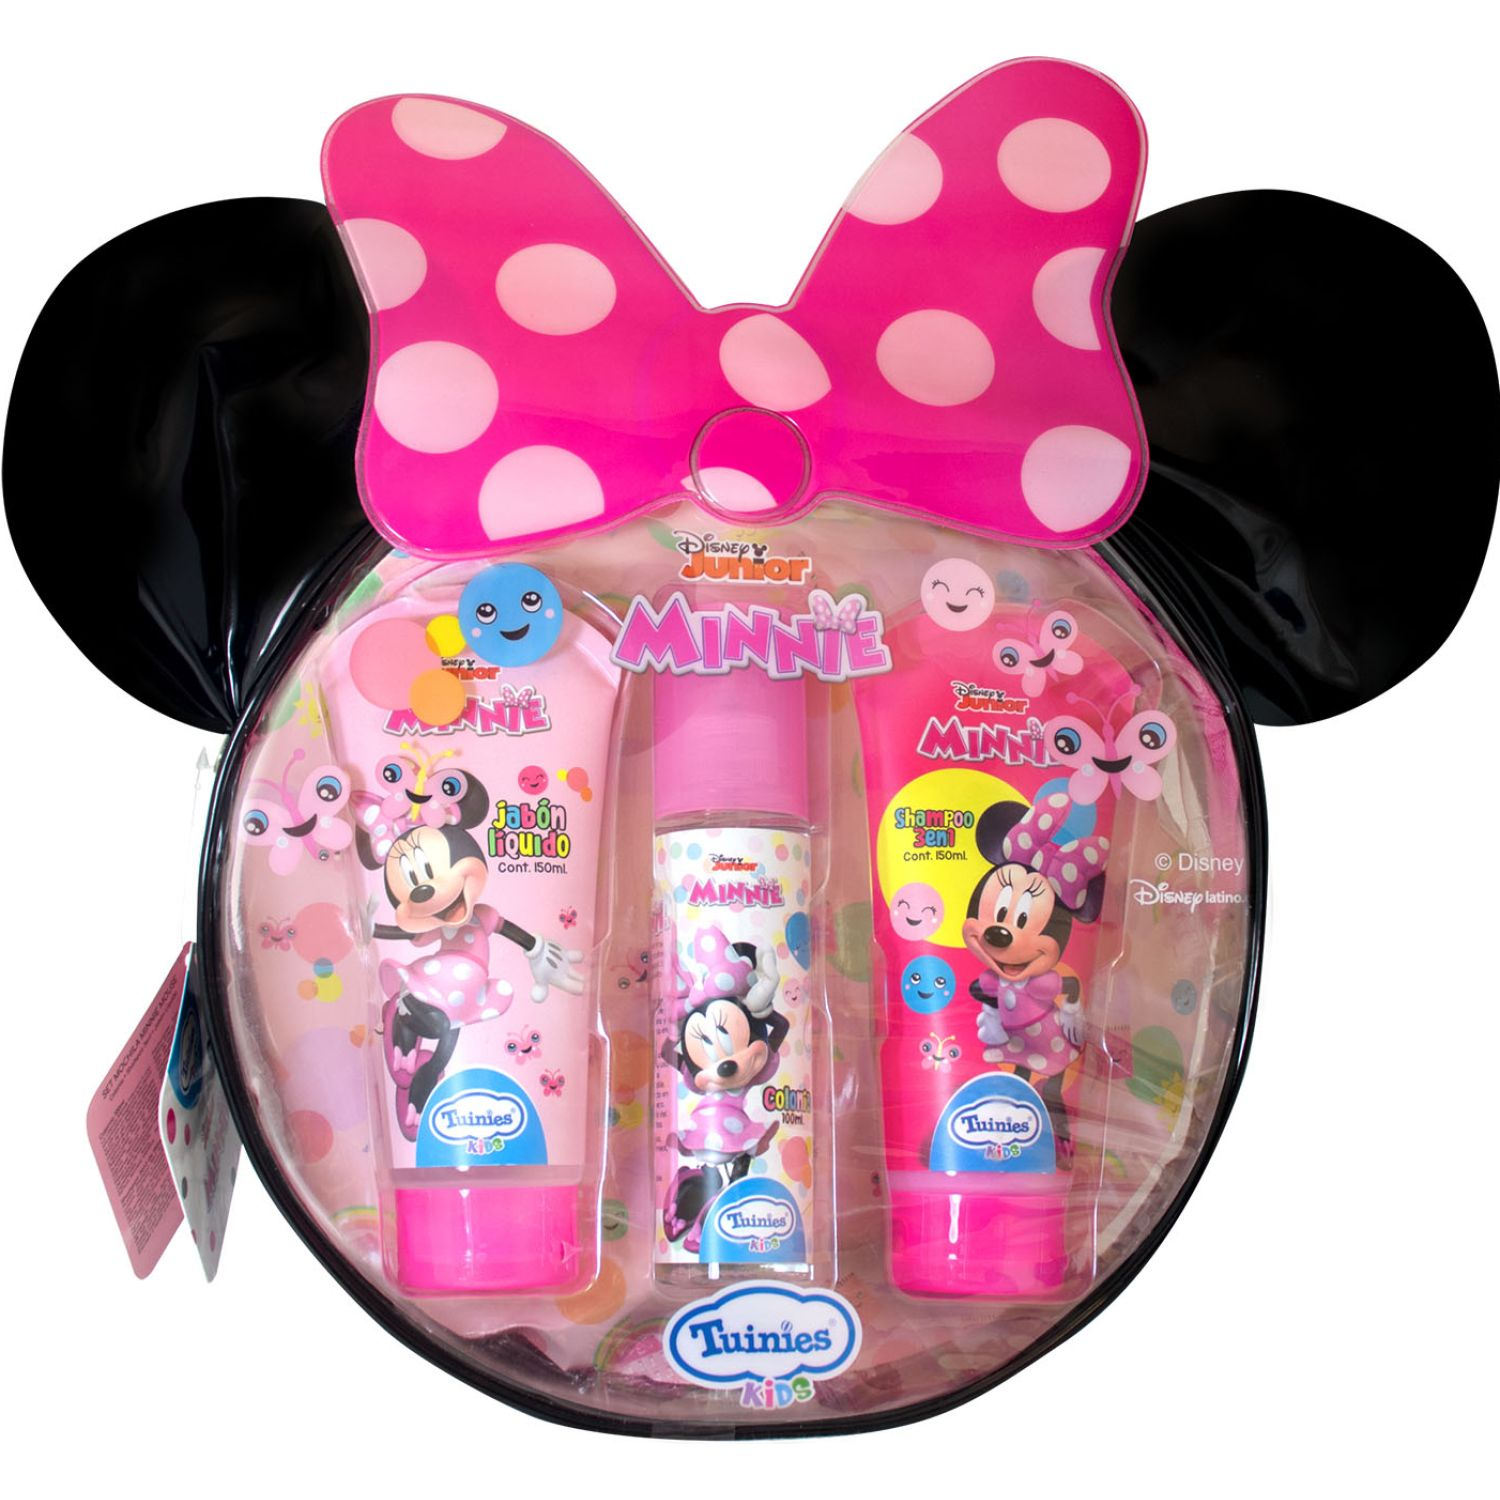 Minnie Set Mochila Minnie (Shampoo 3en1 150 Ml + Jabón líquido 150ml + Colonia 100ml) Varios Shampoo